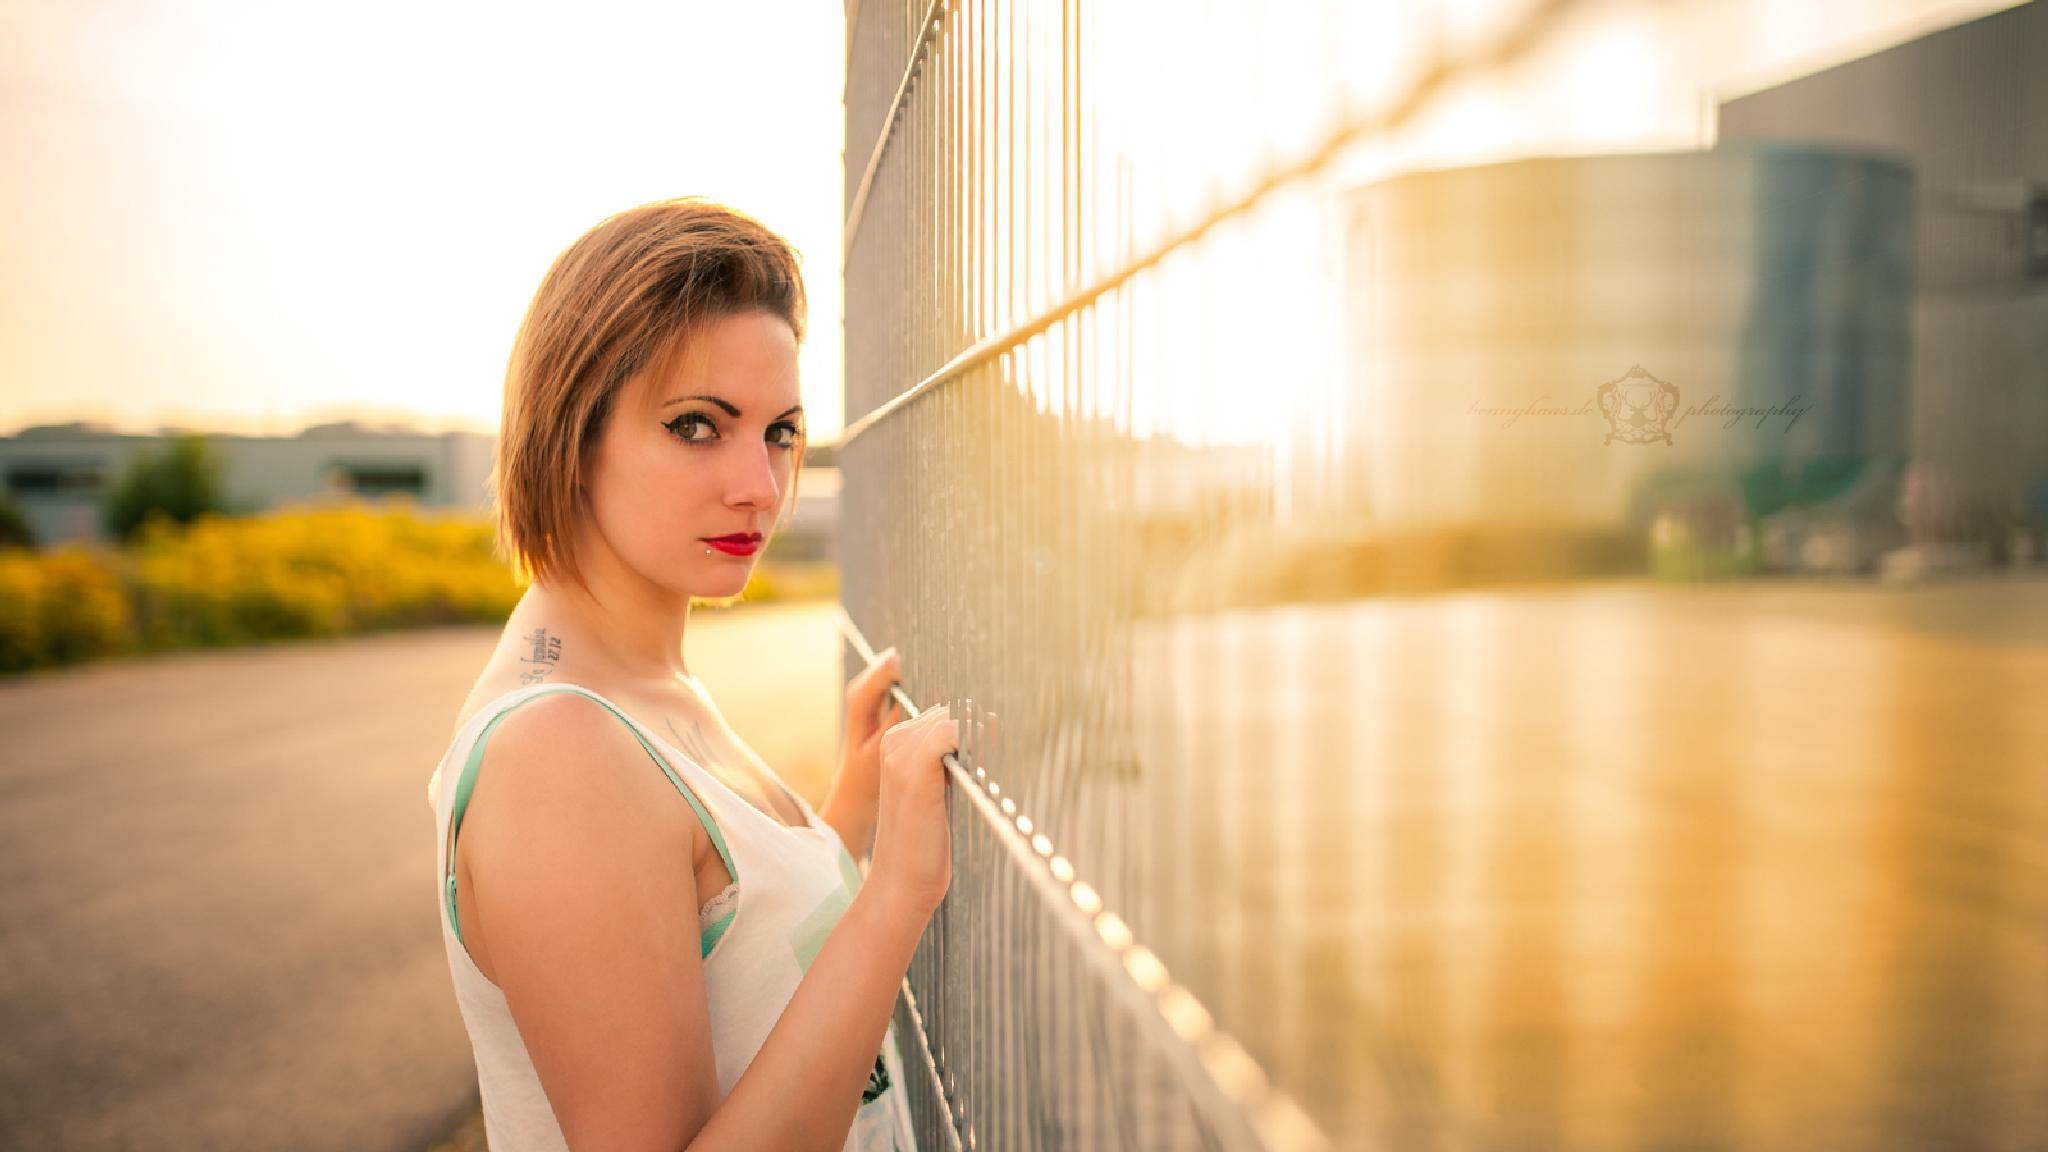 Awesome sunset with Vanessa by Benny Haas